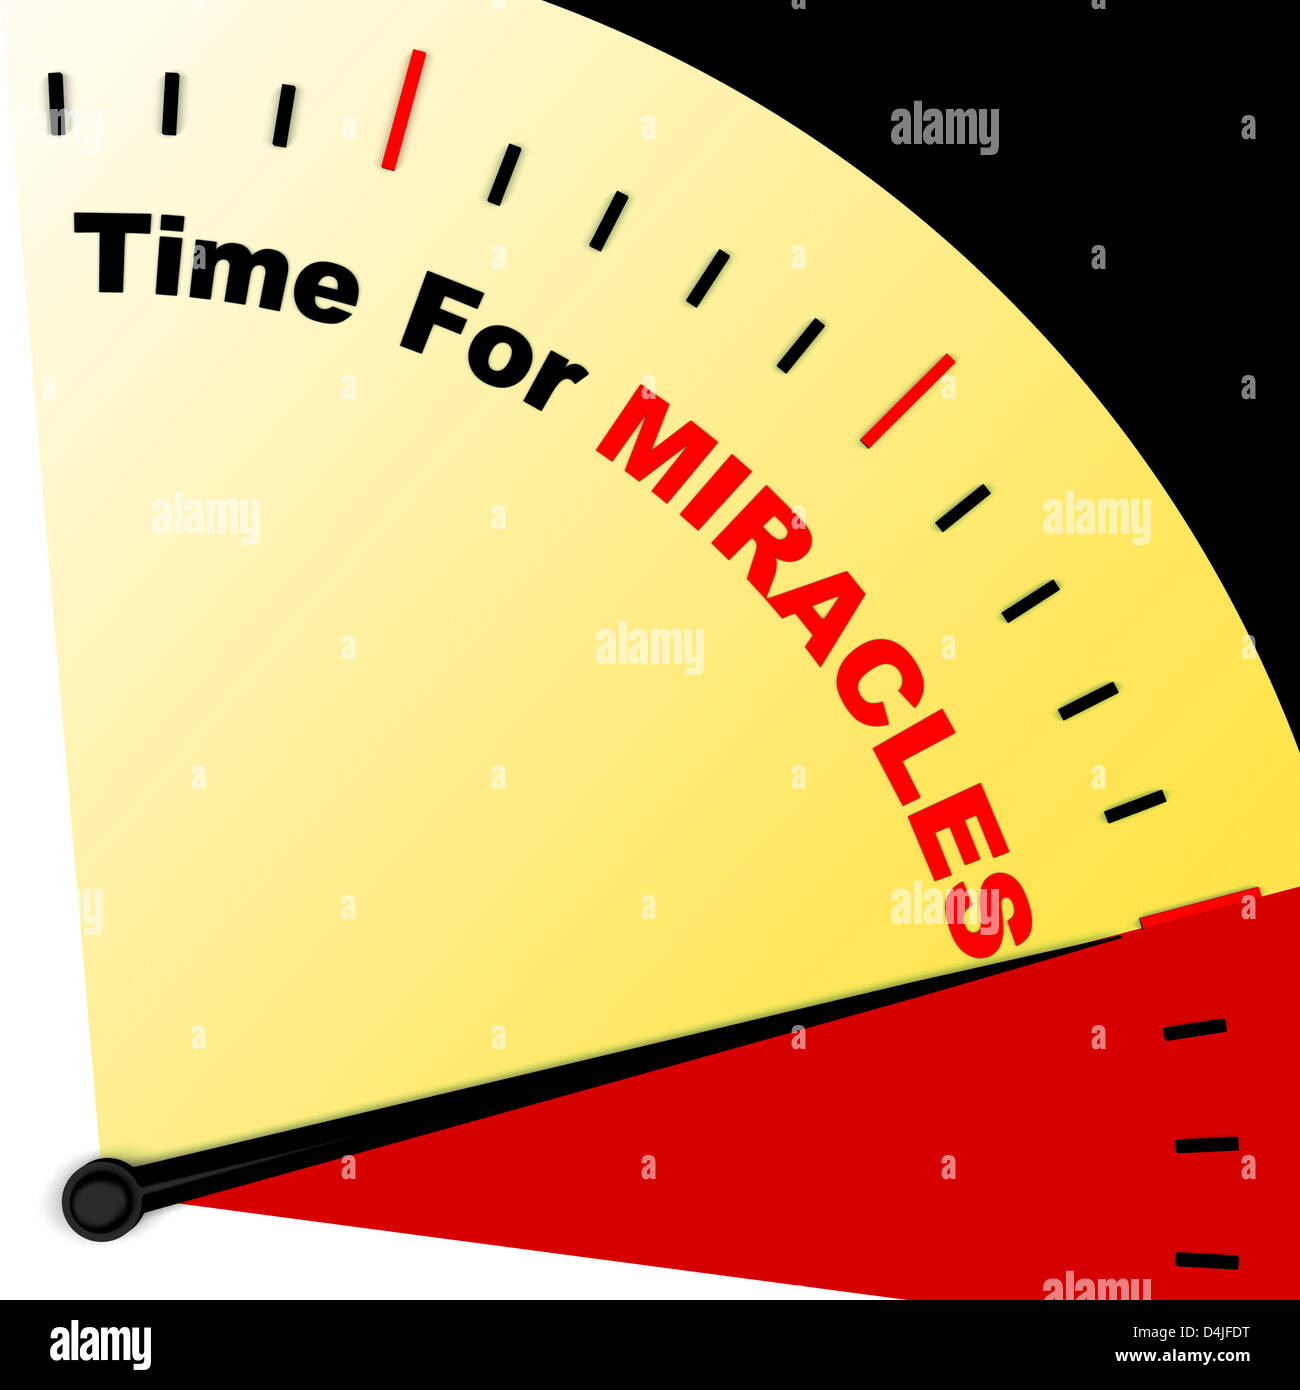 Time For Miracles Message Means Faith In God - Stock Image